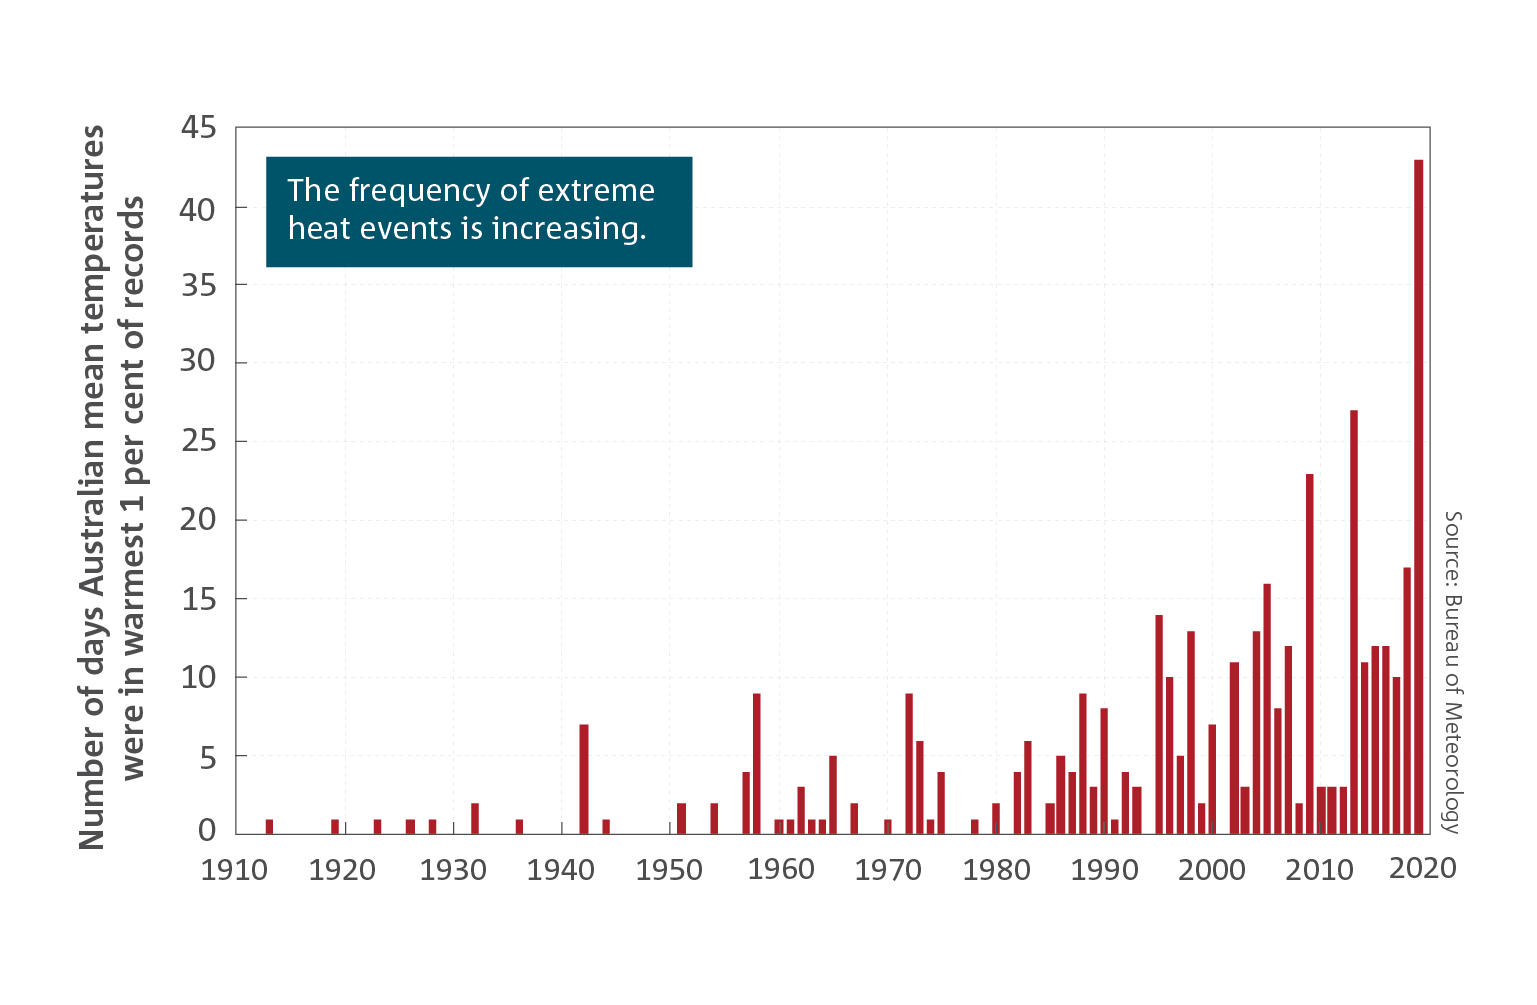 Graph showing the number of days Australian mean temperatures were the warmest 1% of records from 1910 to 2020. The days are increasing in recent years with 2020 significantly higher than any other year at between 40 and 45 days.